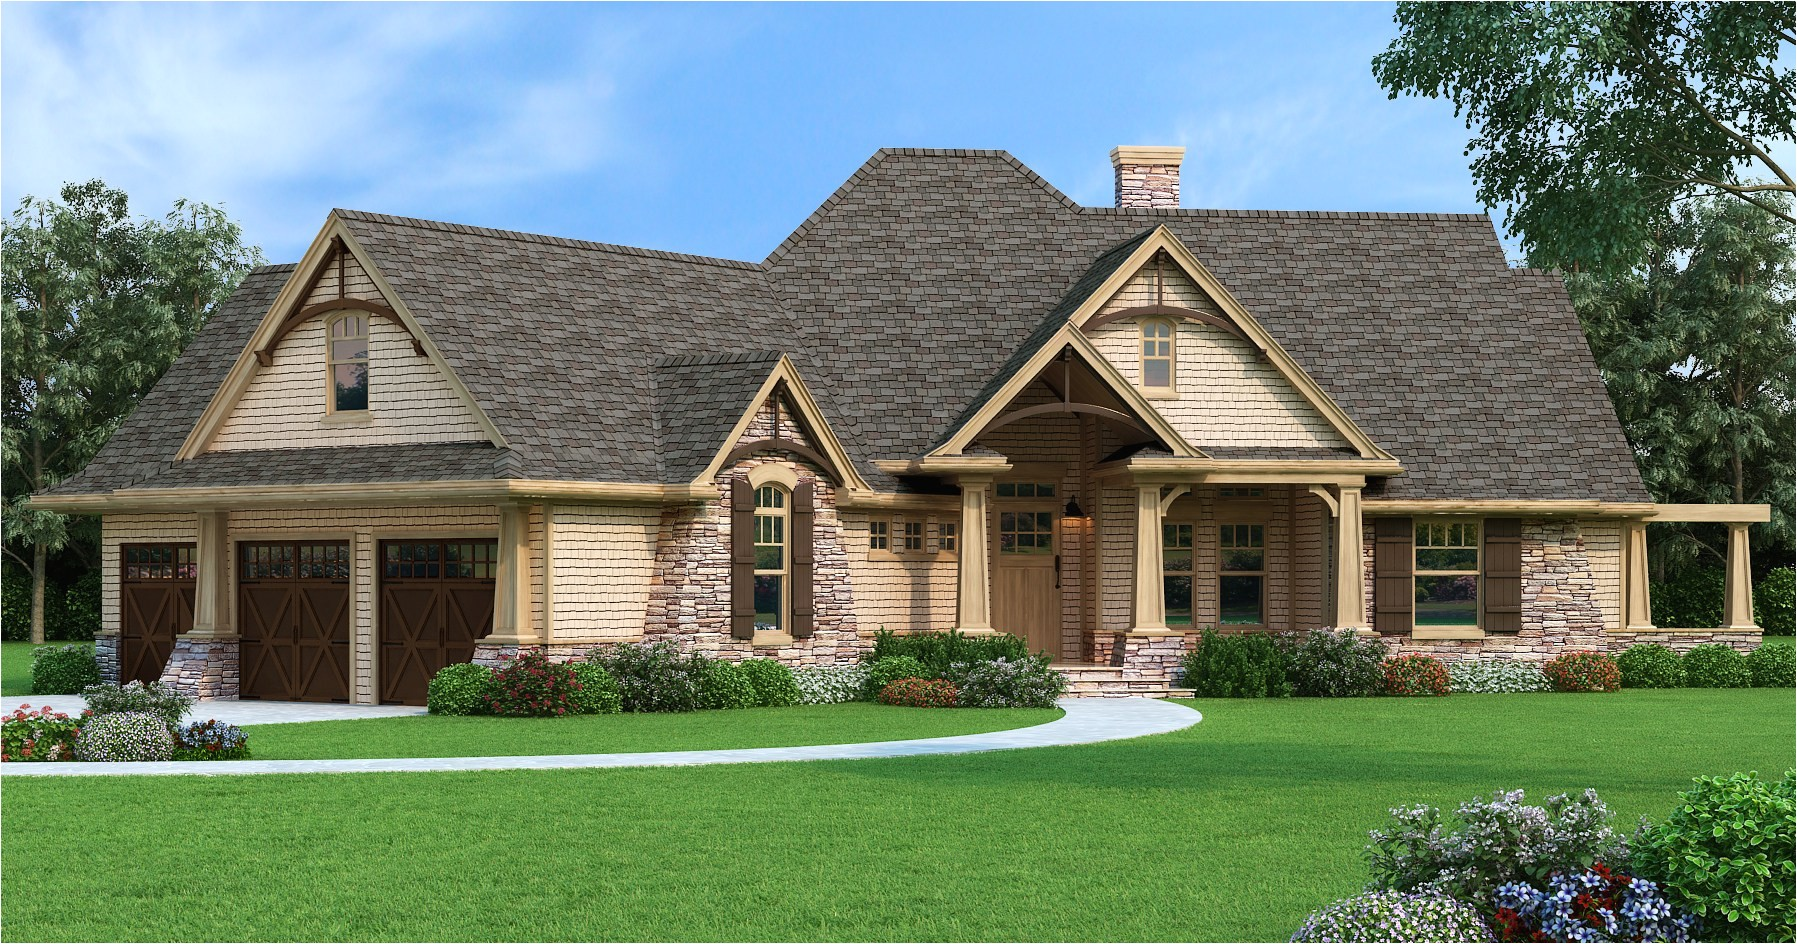 Best Selling Craftsman House Plans top Craftsman House Plans 28 Images Best Craftsman